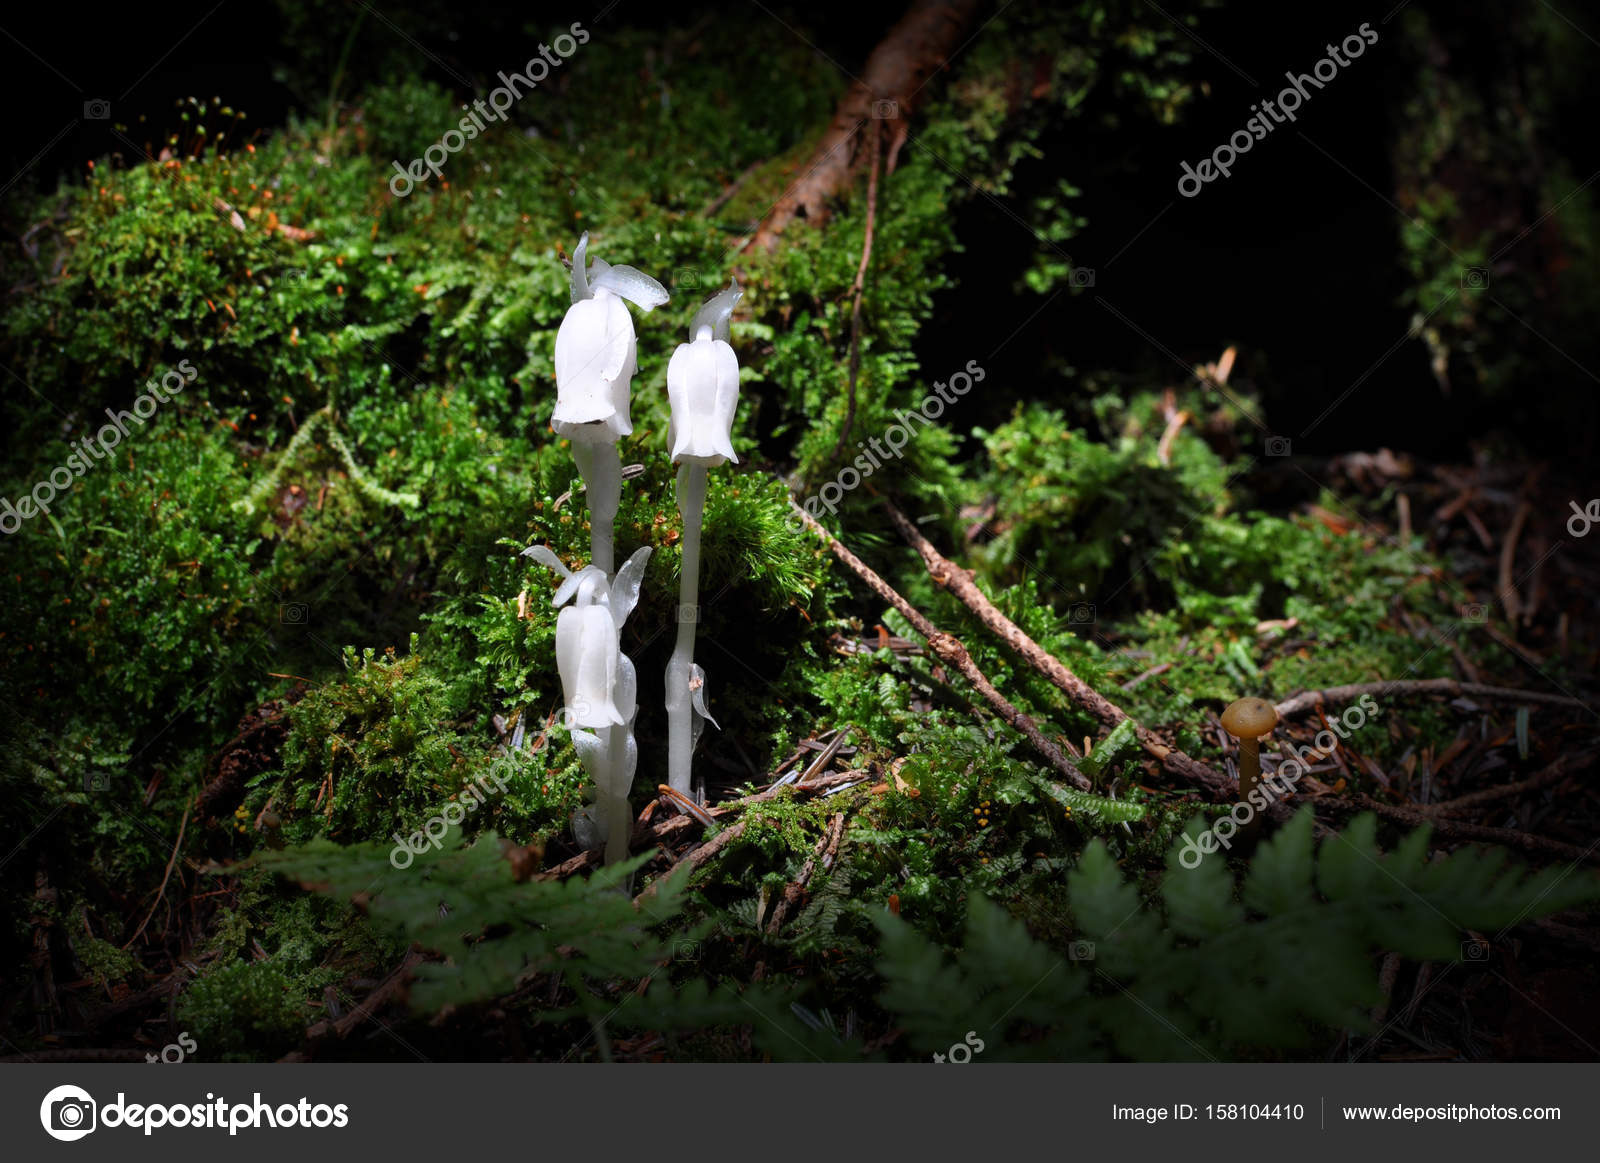 White Flowers Of Monotropa Uniflora Also Known As Ghost Plant Or